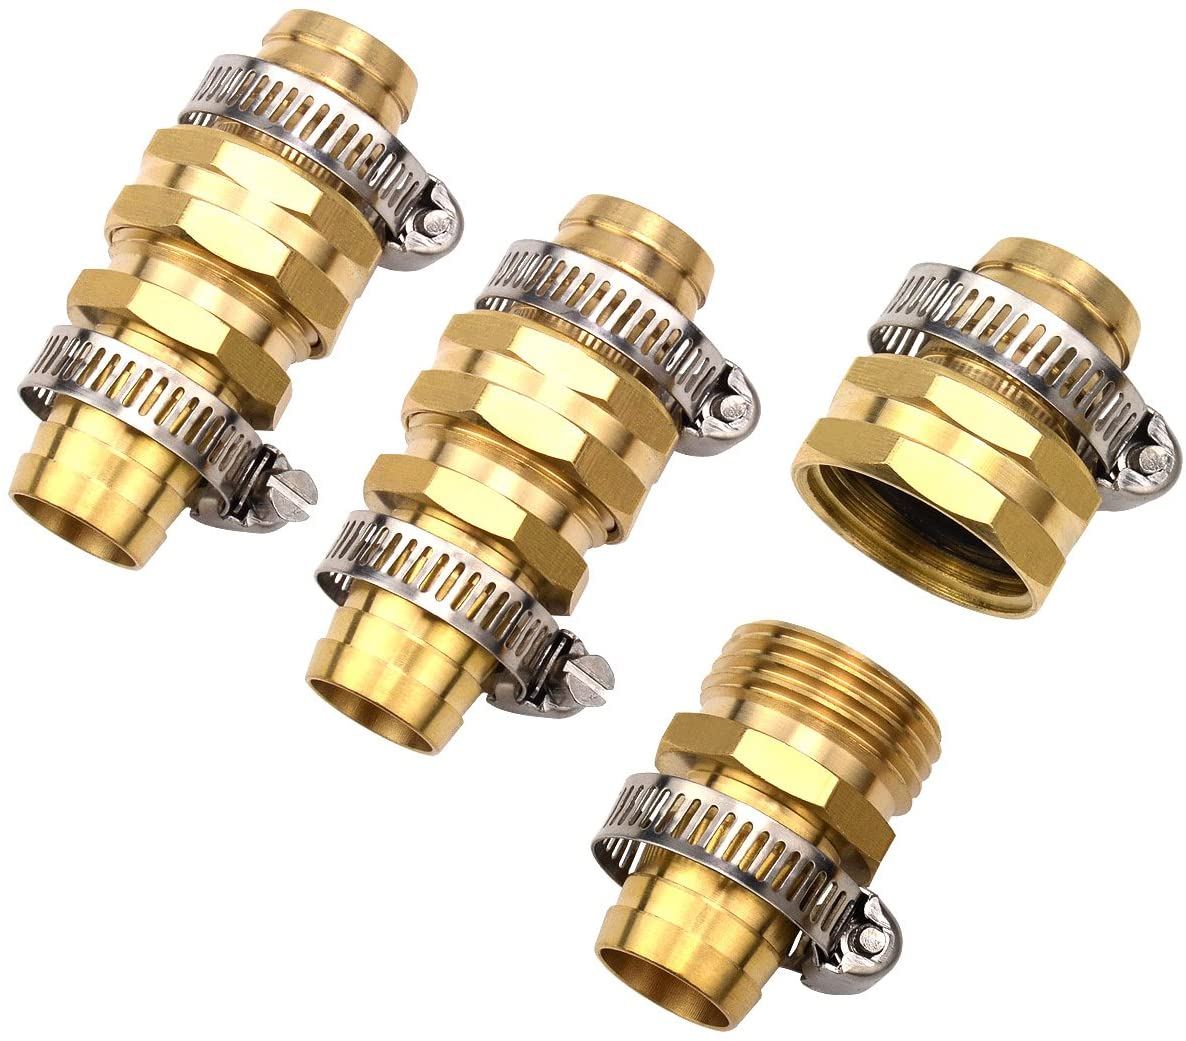 "3Sets 3/4"" Brass Garden Hose Mender End Repair Male Female Connector with Stainless Clamp"